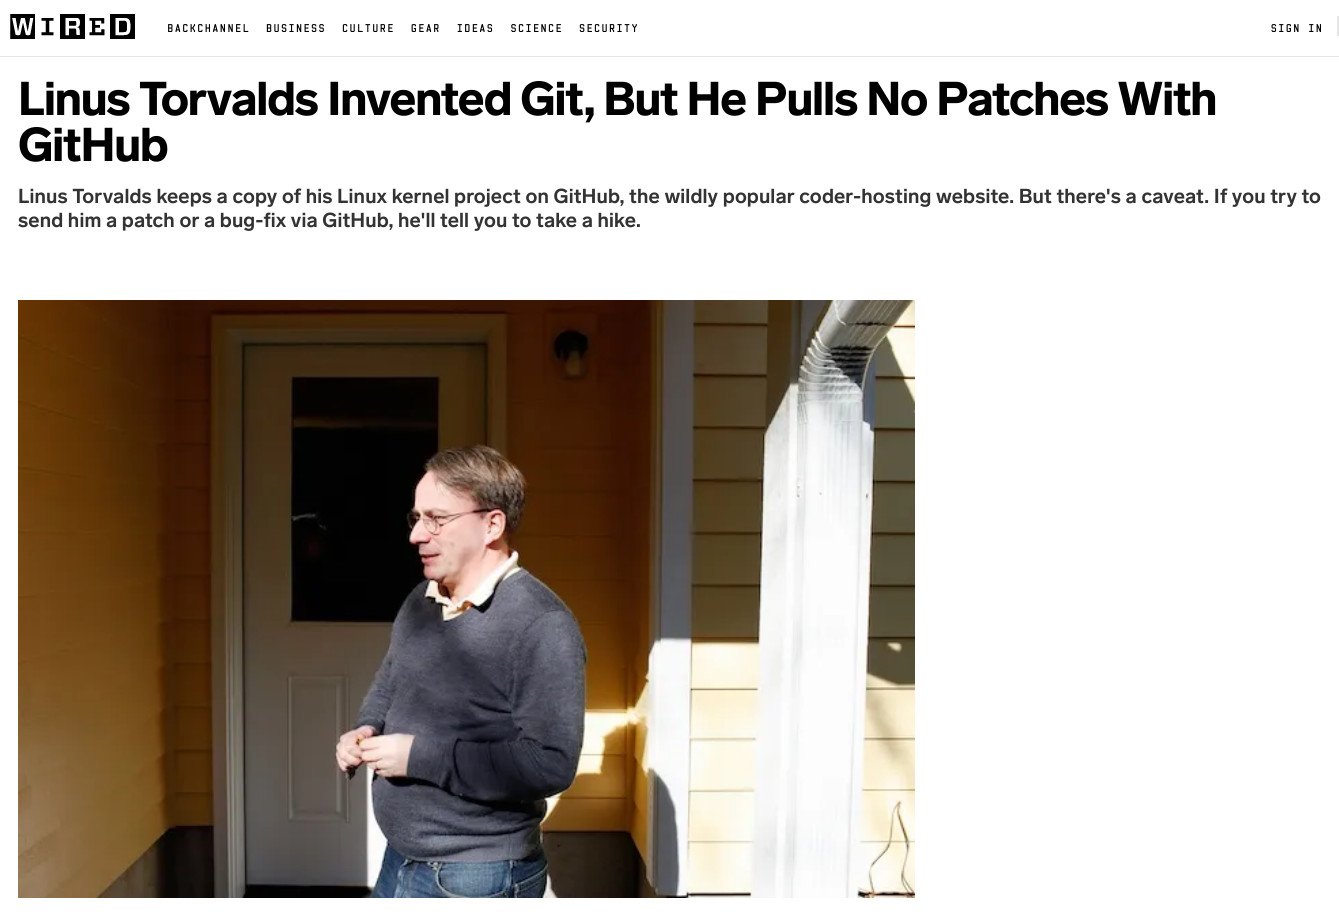 Linus Torvalds Invented Git, But He Pulls No Patches With GitHub